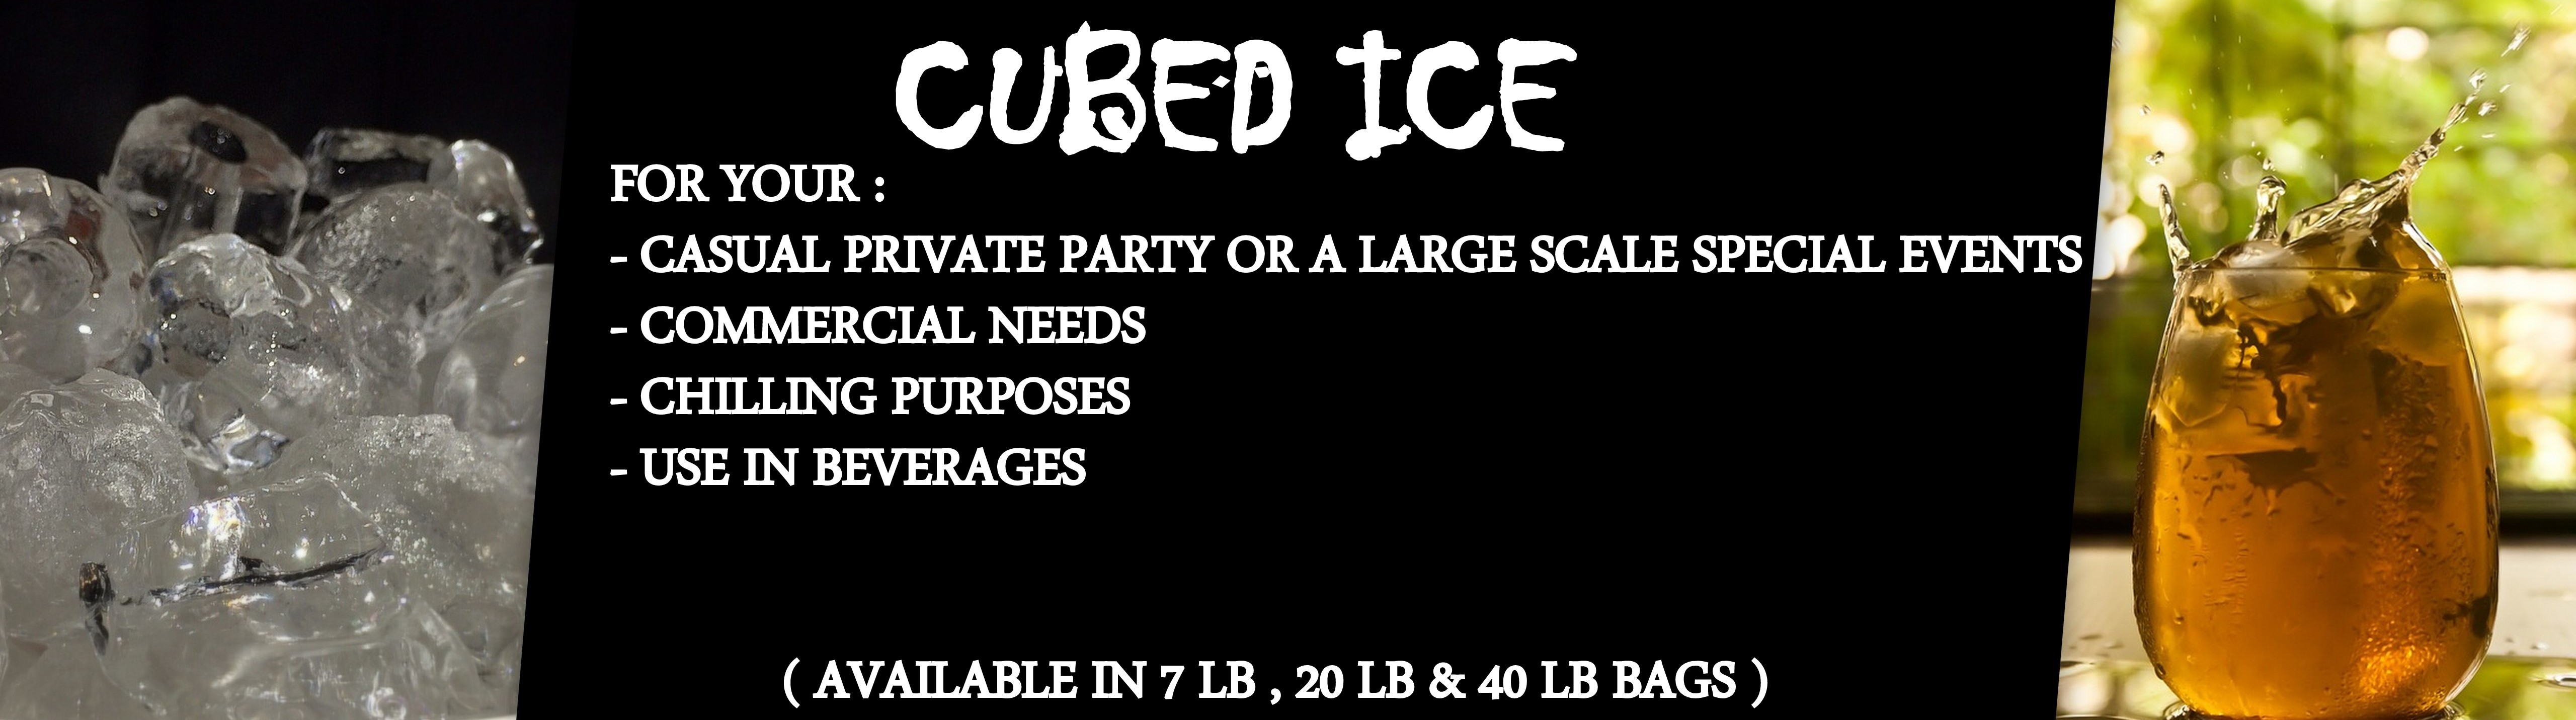 1 CUBED ICE